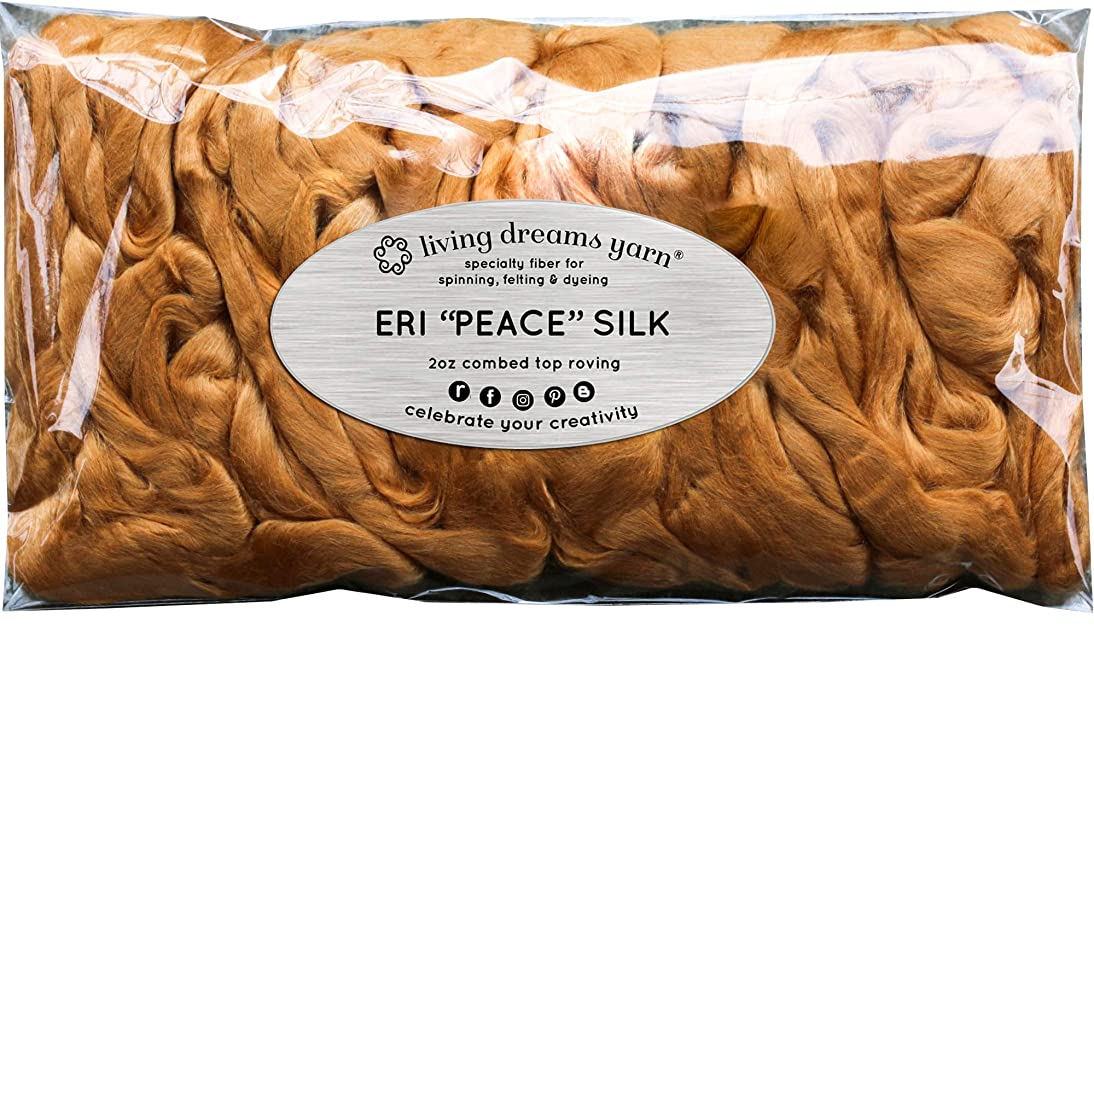 Red Eri Peace Silk Fiber for Soap Making, Spinning, Blending, Felting, Dyeing, and Paper Making. Natural Color Combed Top.